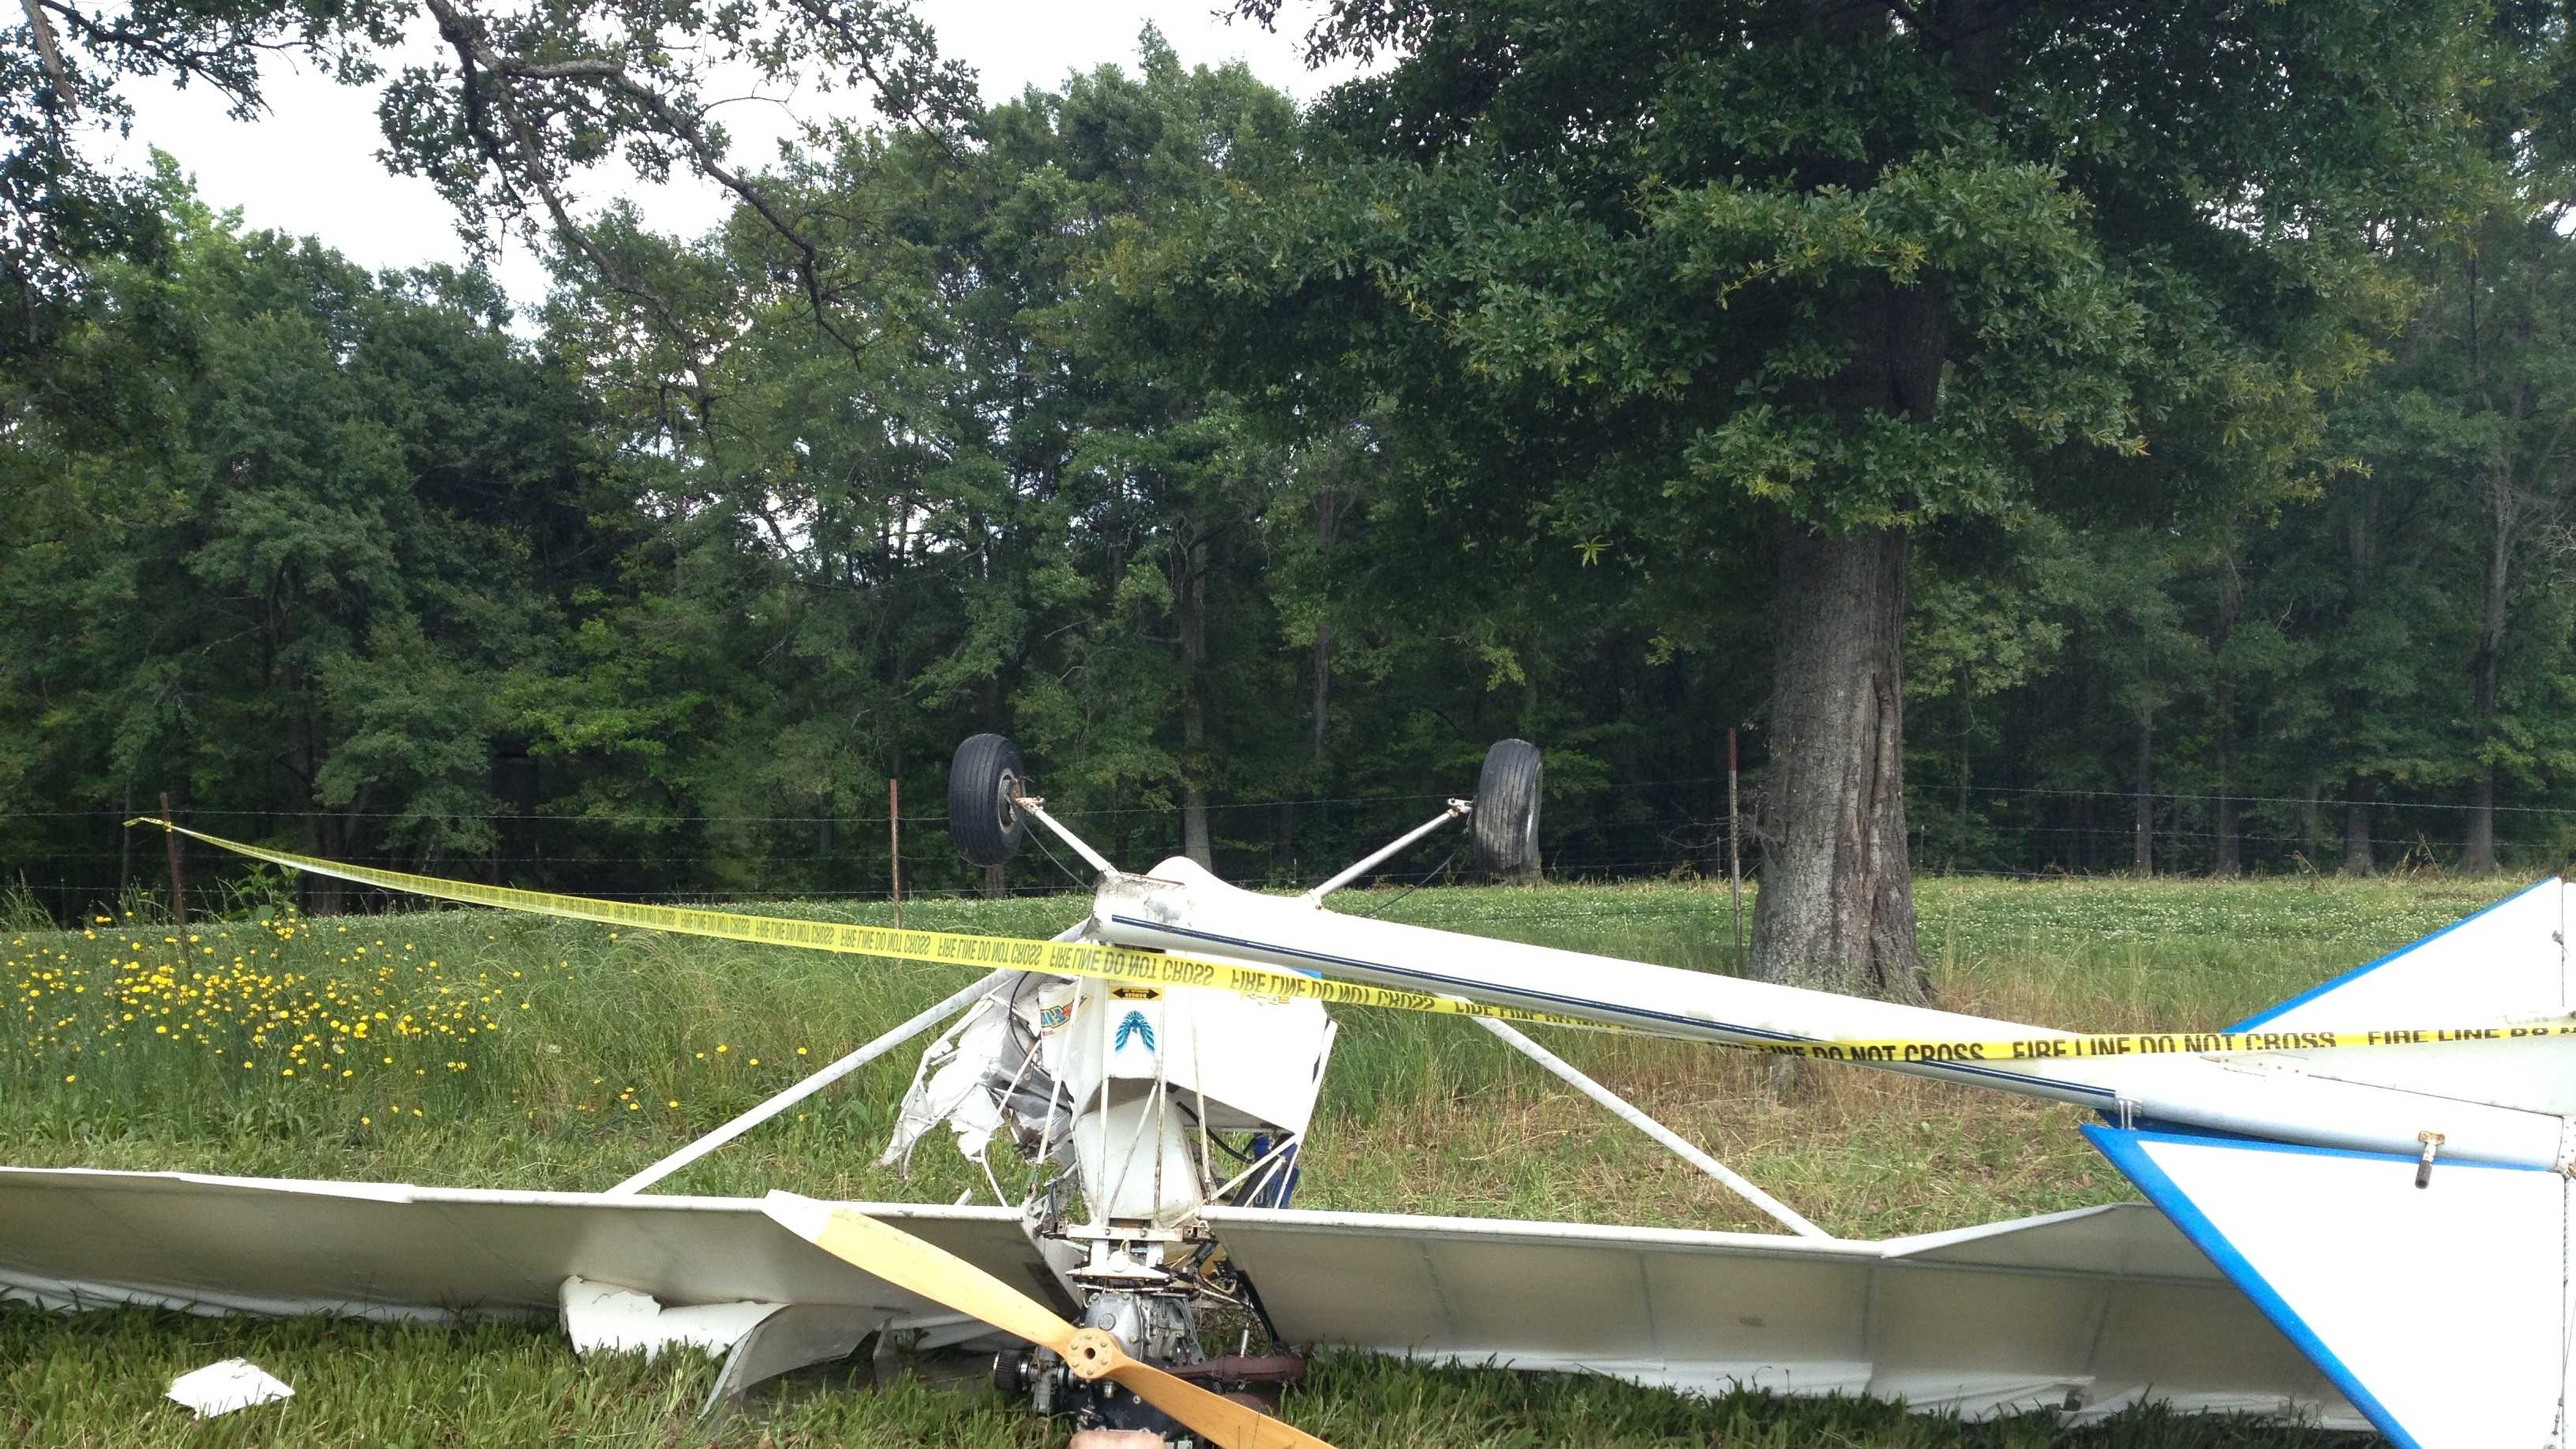 A featherlight aircraft crashed in Fountain Inn, injuring one person, according to Fountain Inn police.